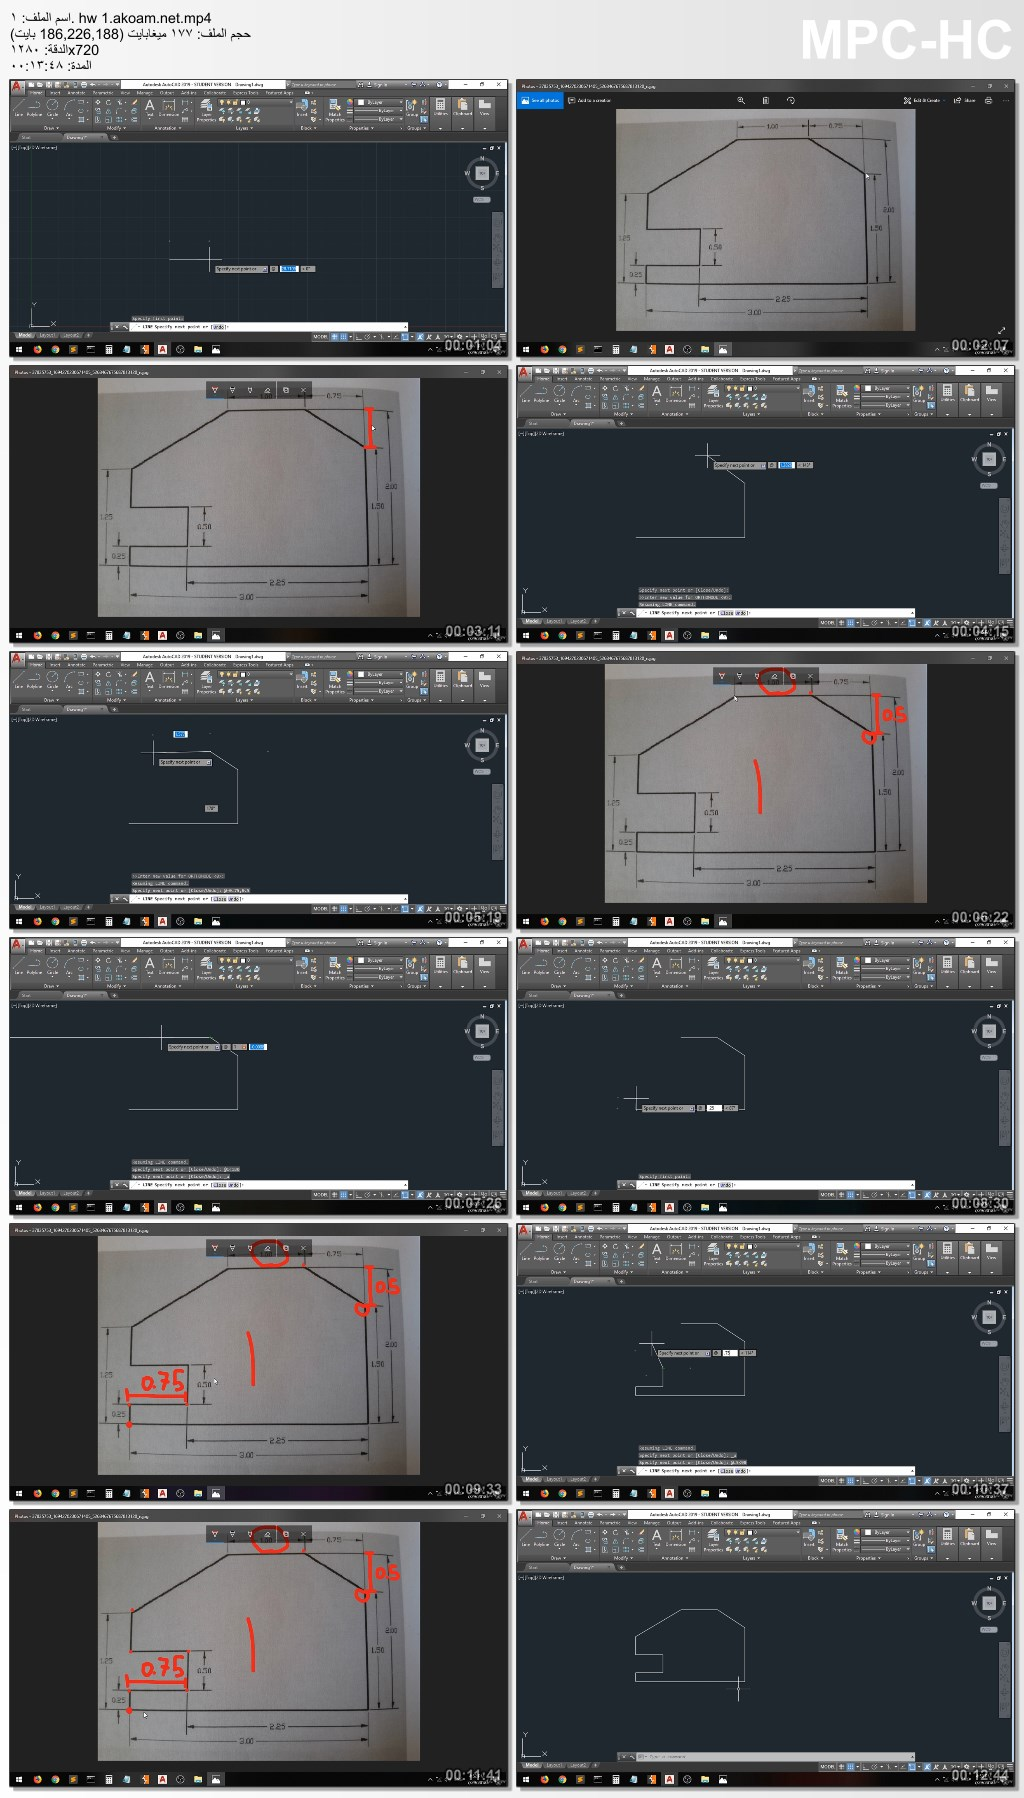 AutoCAD 2019 course 2D drawing from A to Z,AutoCAD 2019 course 2D drawing,AutoCAD 2019,كورس أوتوكاد 2019,الرسم ثنائي الأبعاد,كورس,تعليم,يوديمى